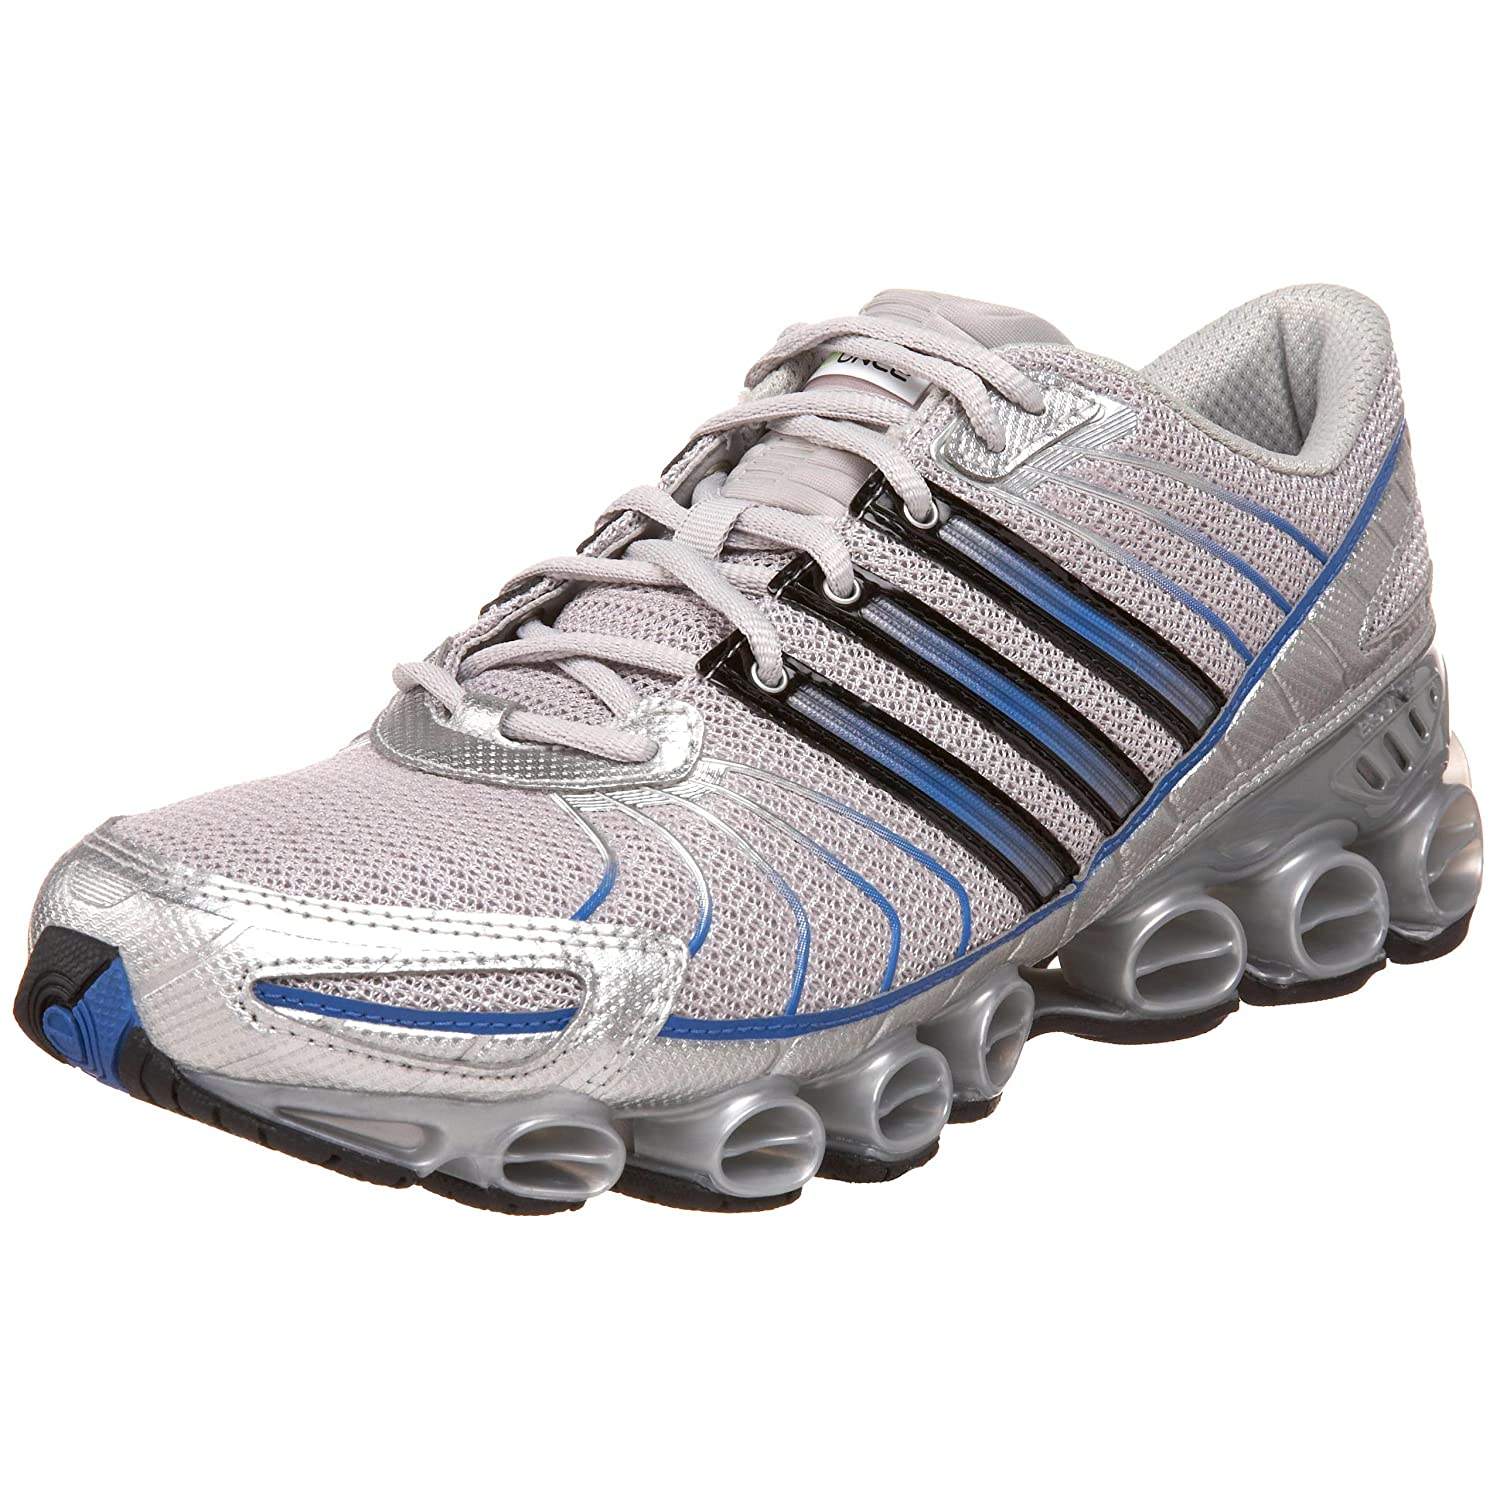 66301f1d368fc Adidas Men's Rava MB Running Shoe, Silver/Blue/Electricity, 8 M: Buy ...